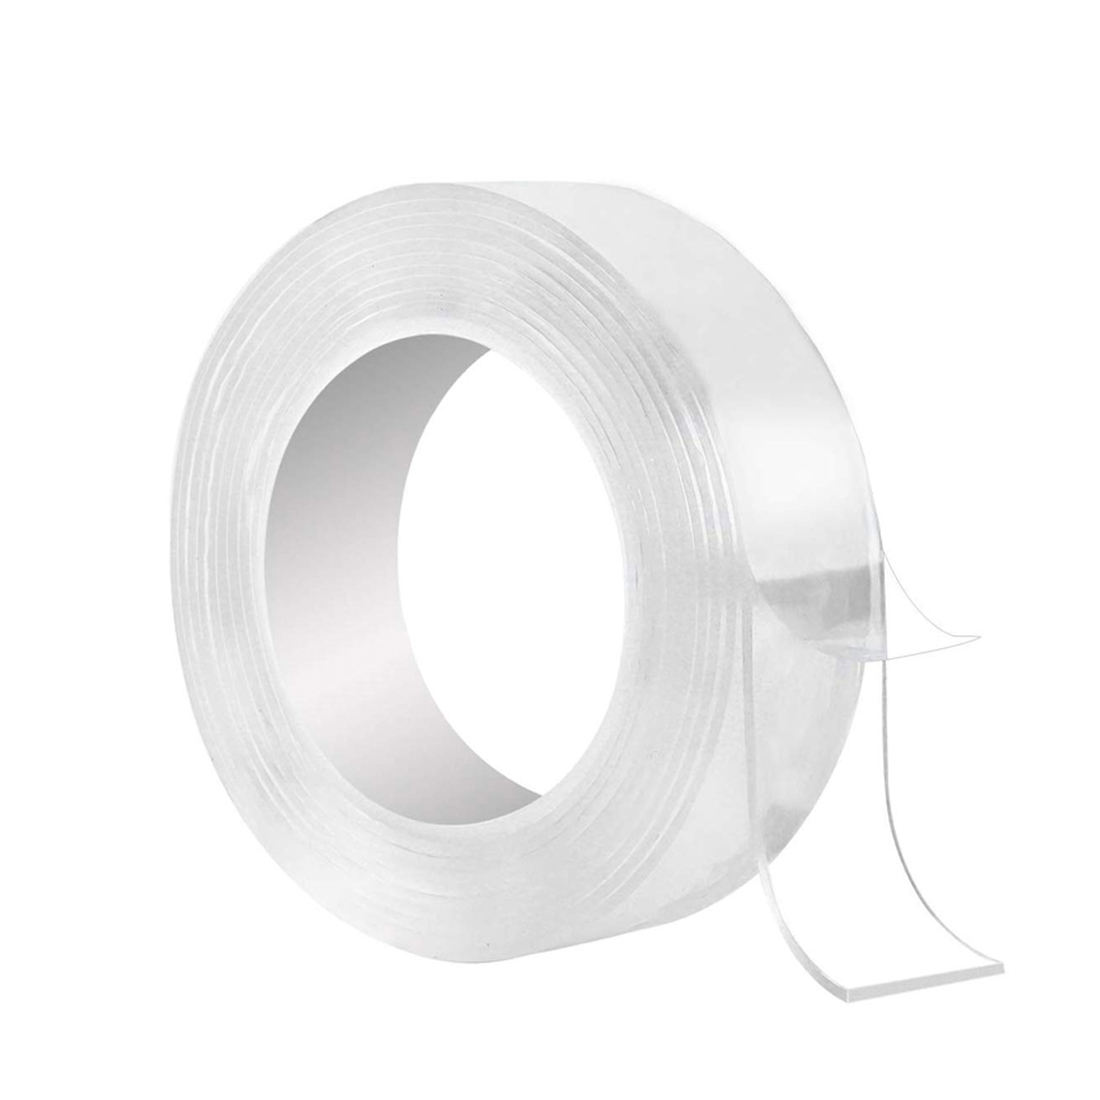 EONBON Transparent Double Sided Washable Sorcery Nano Adhesive Tape